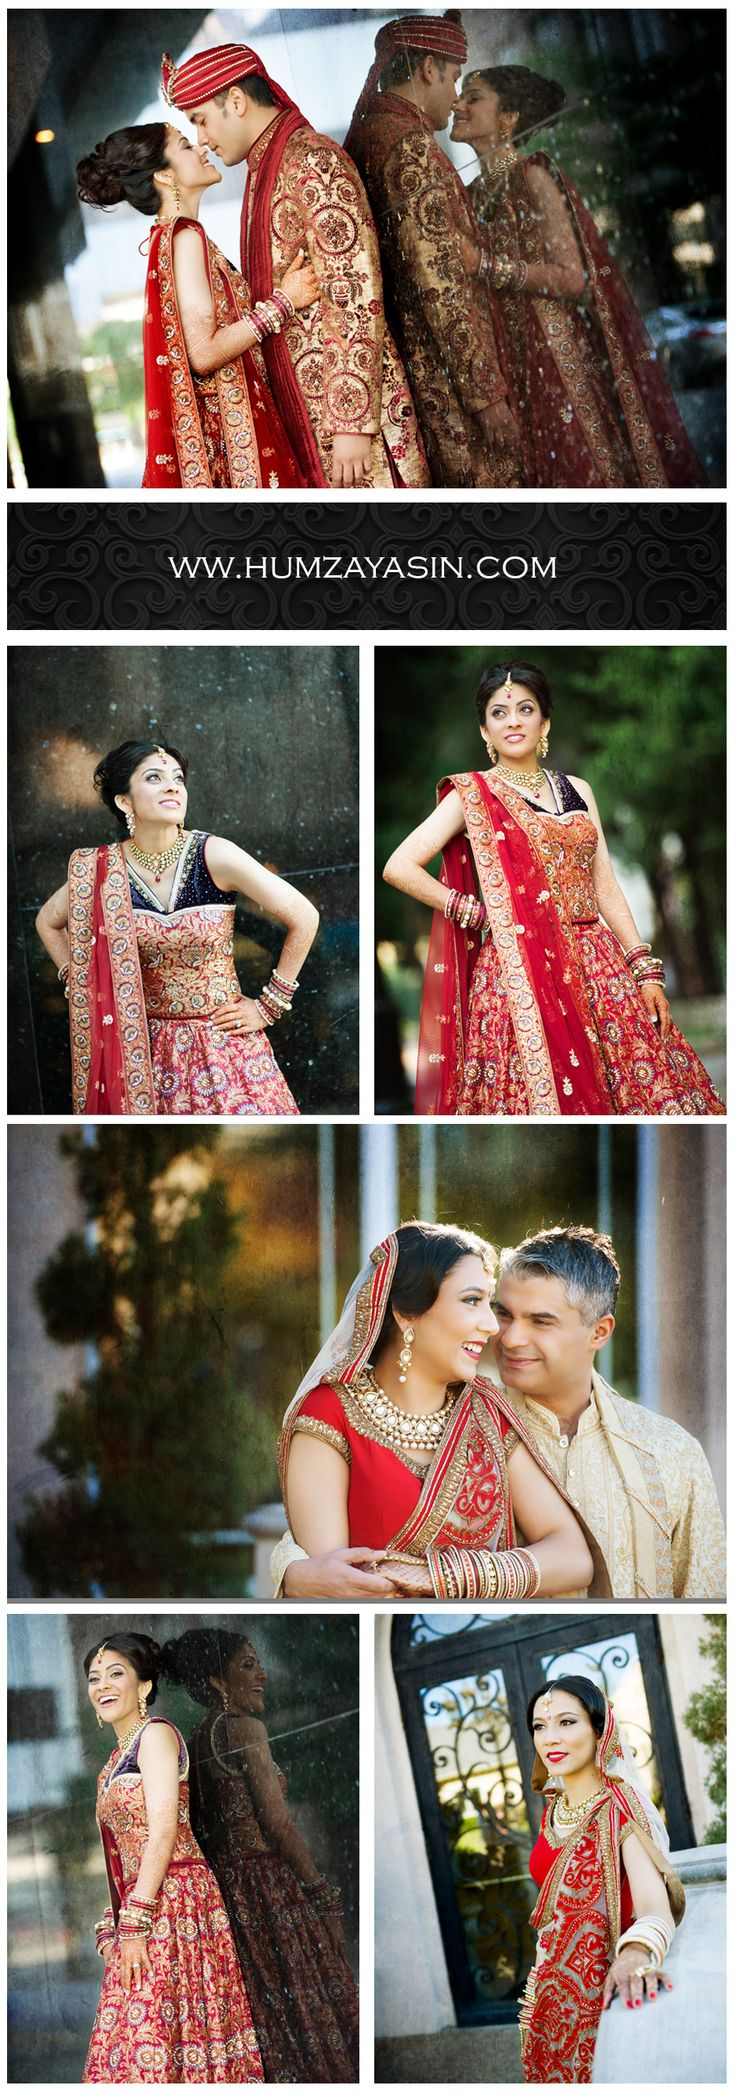 Indian Bride and Groom Photos